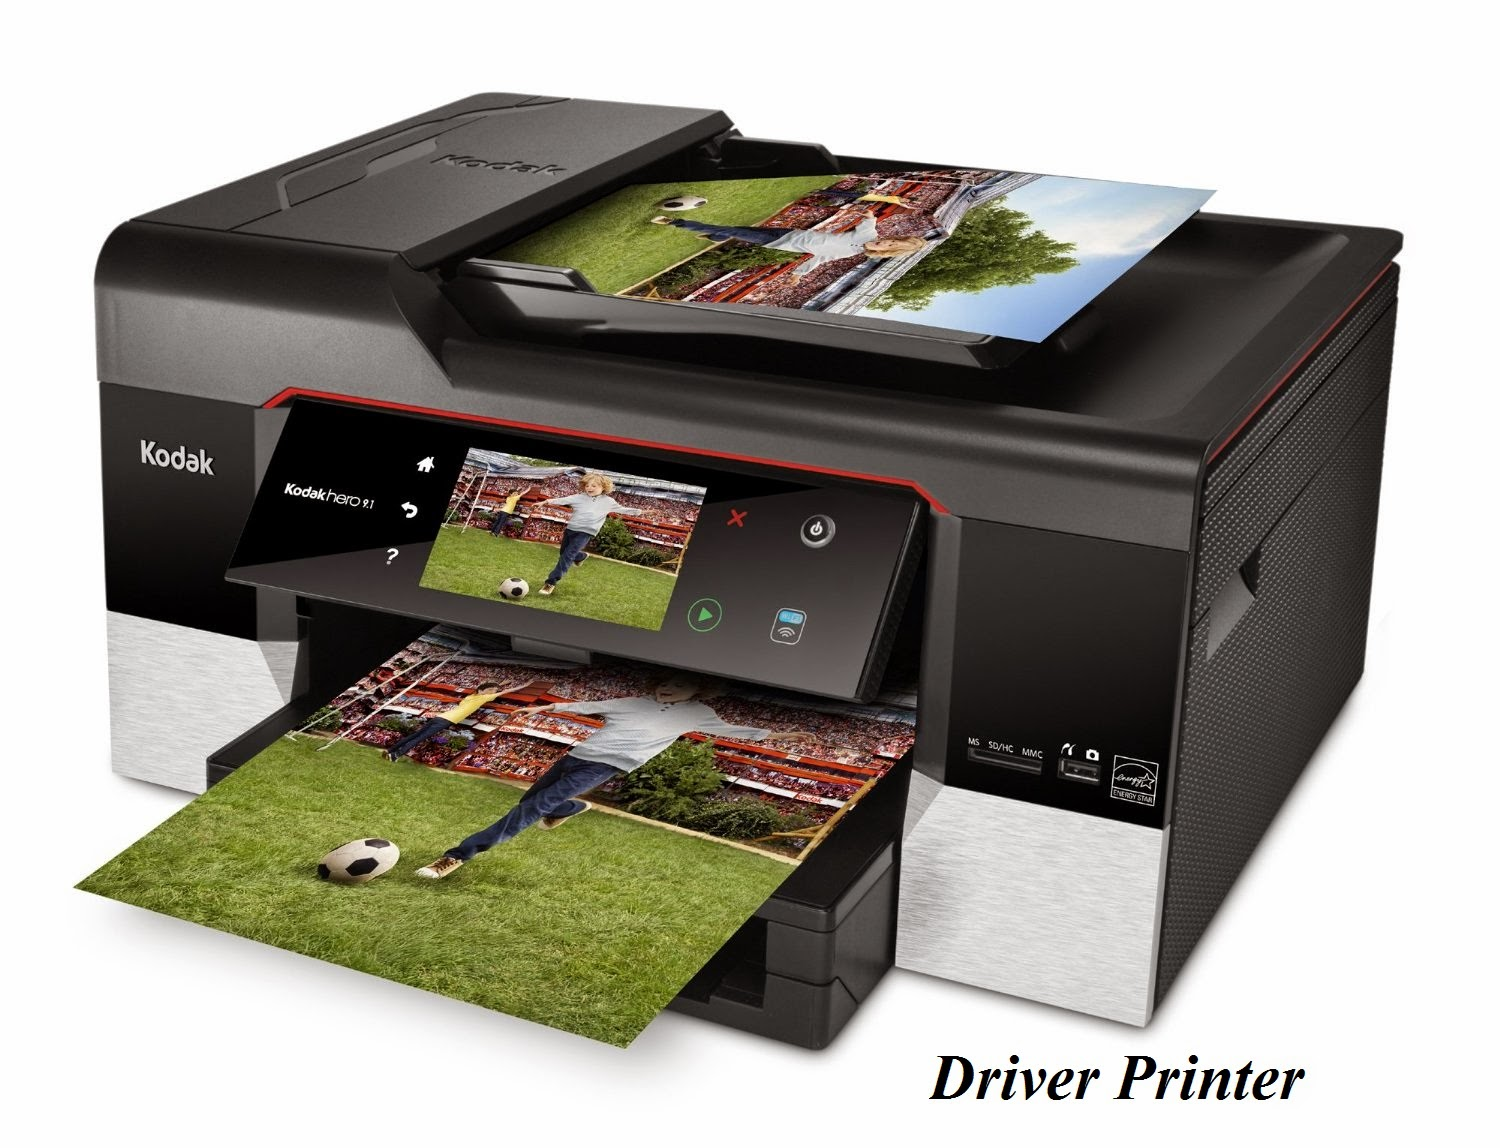 is the perfect check for the whole household unit of measurement Kodak Hero 4.2 Printer Driver Downloads